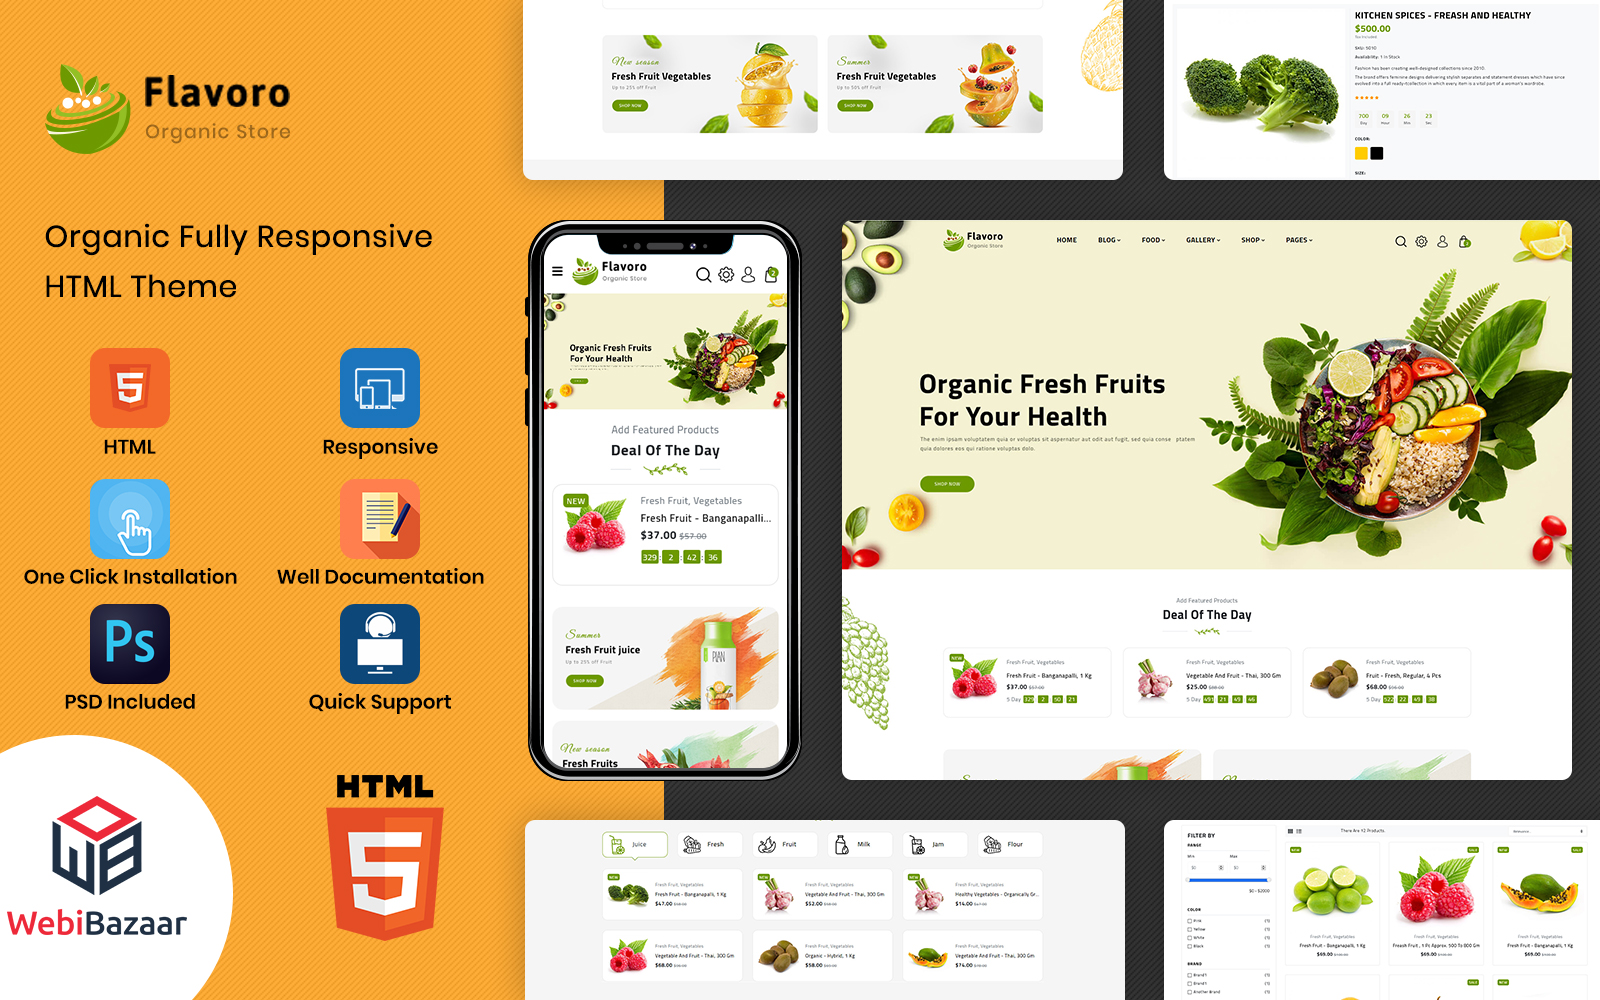 Flavoro - HTML5 Multipurpose eCommerce Website Template